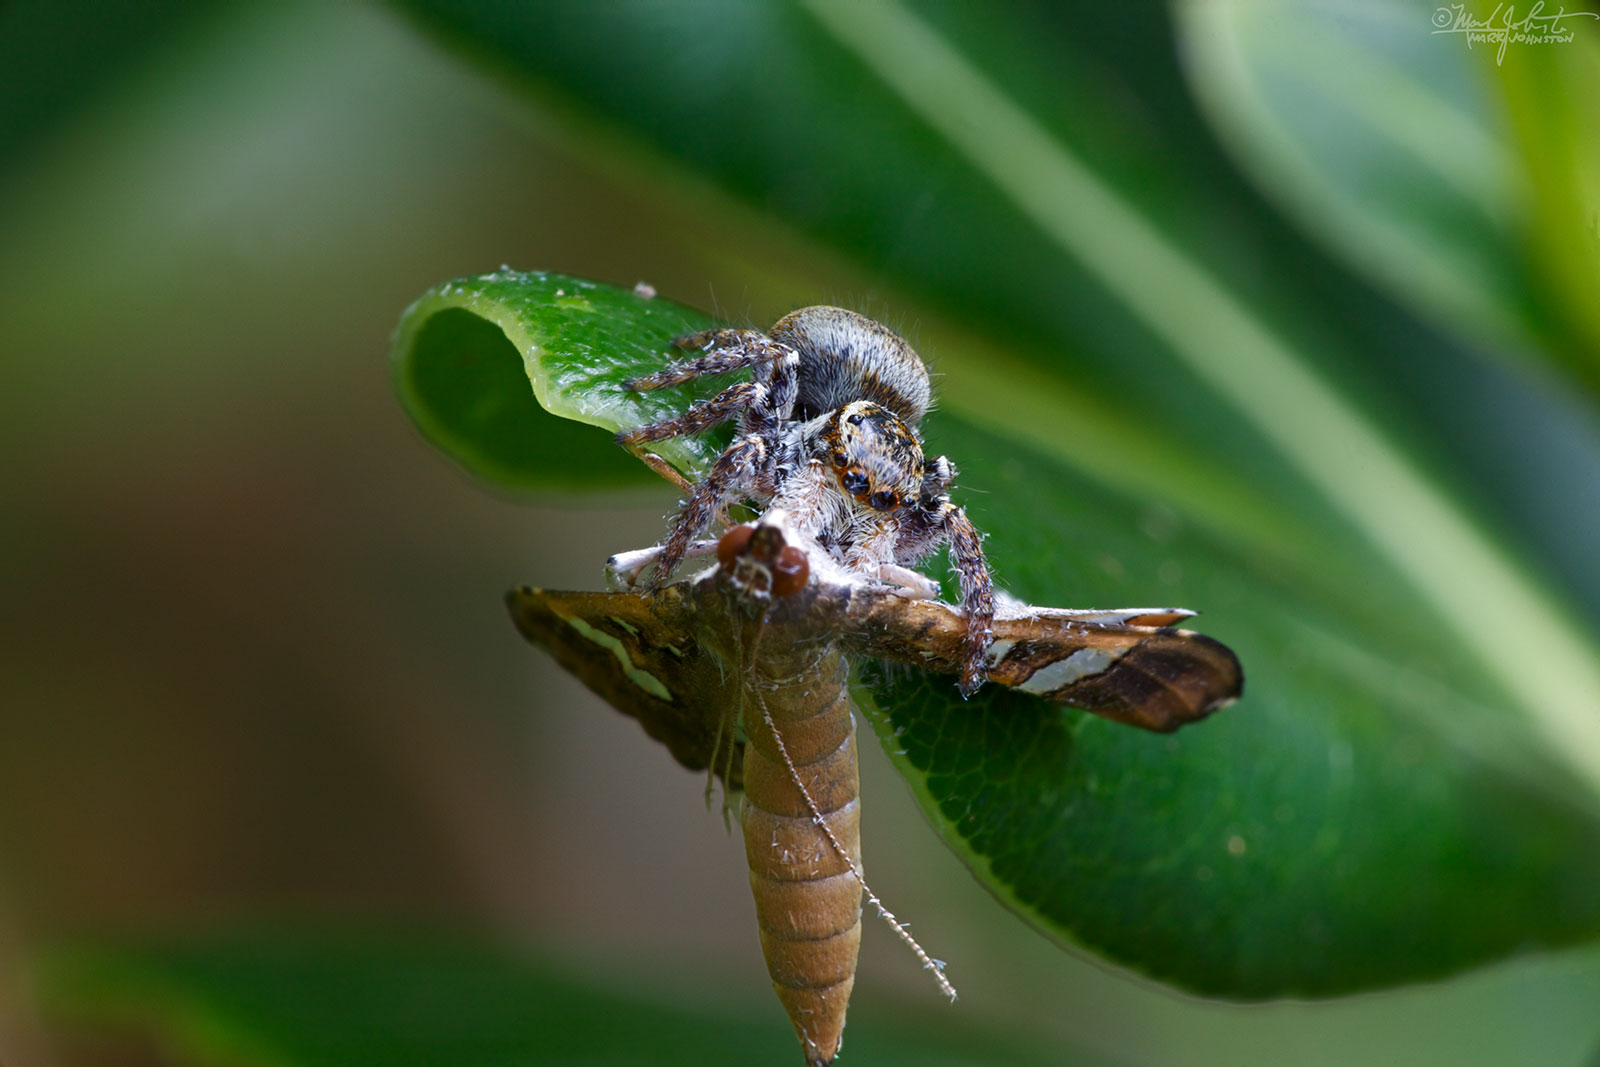 Jumping spider captures a moth.